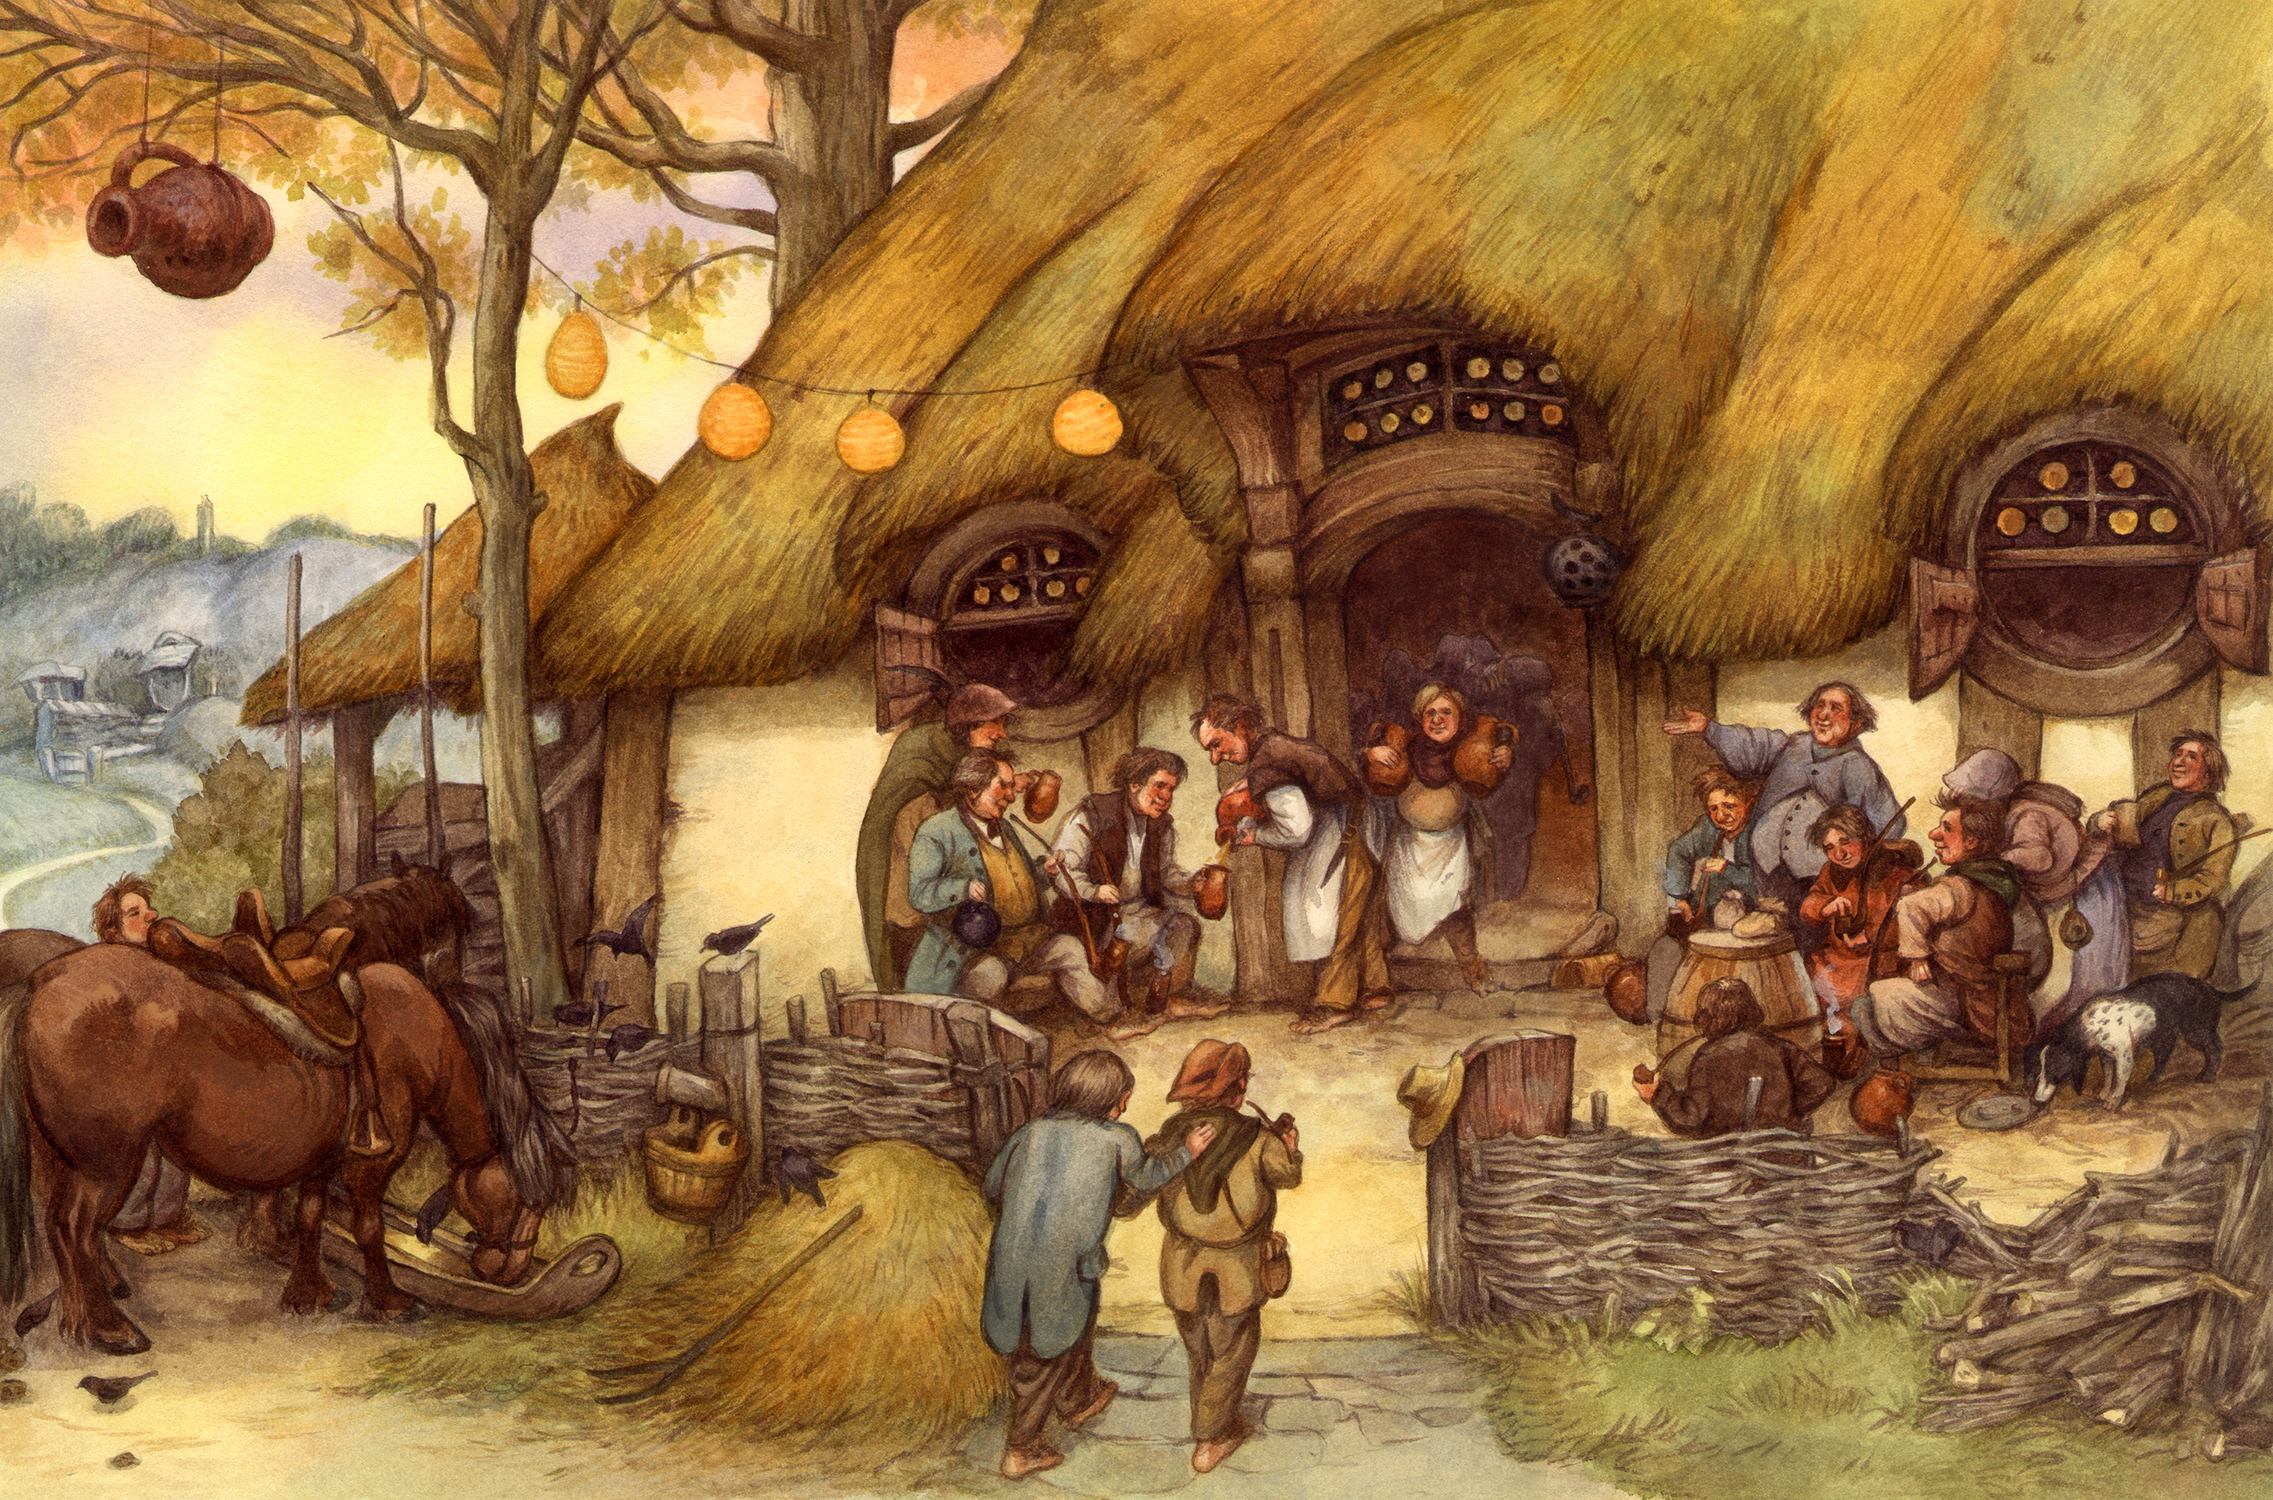 The Shire: tavern at Frogmorton Artwork by David Wenzel